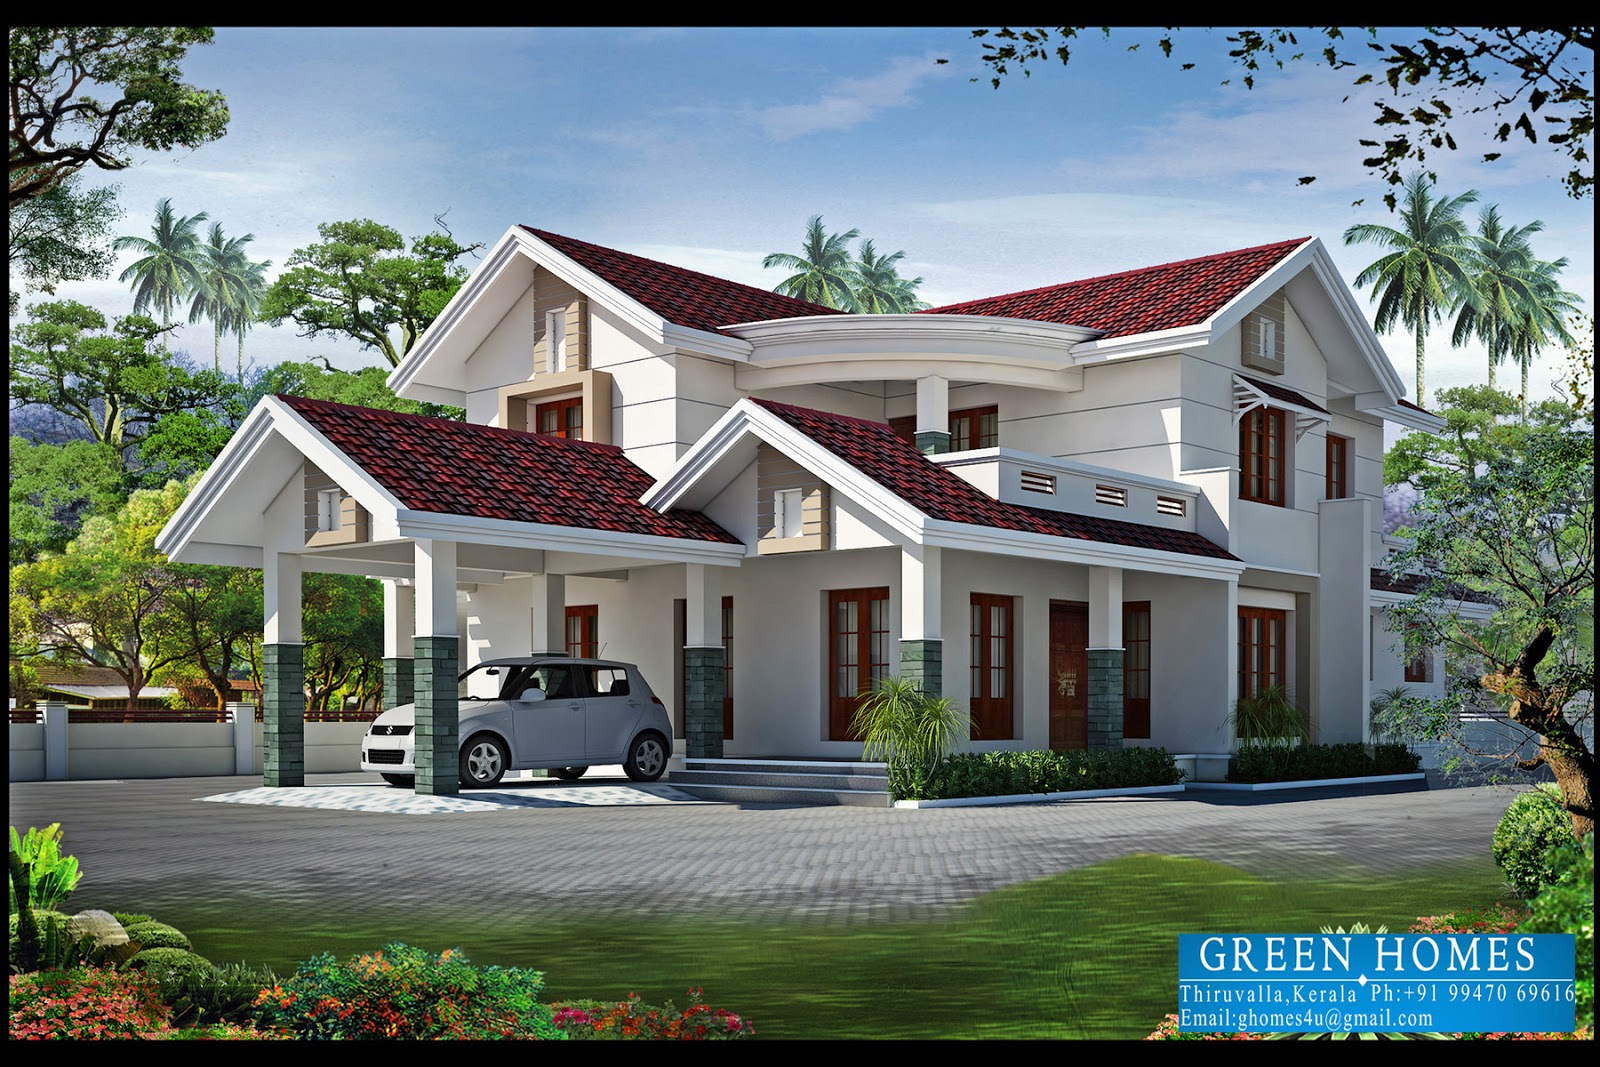 Green homes 4bhk kerala home design 2550 for New home designs 2015